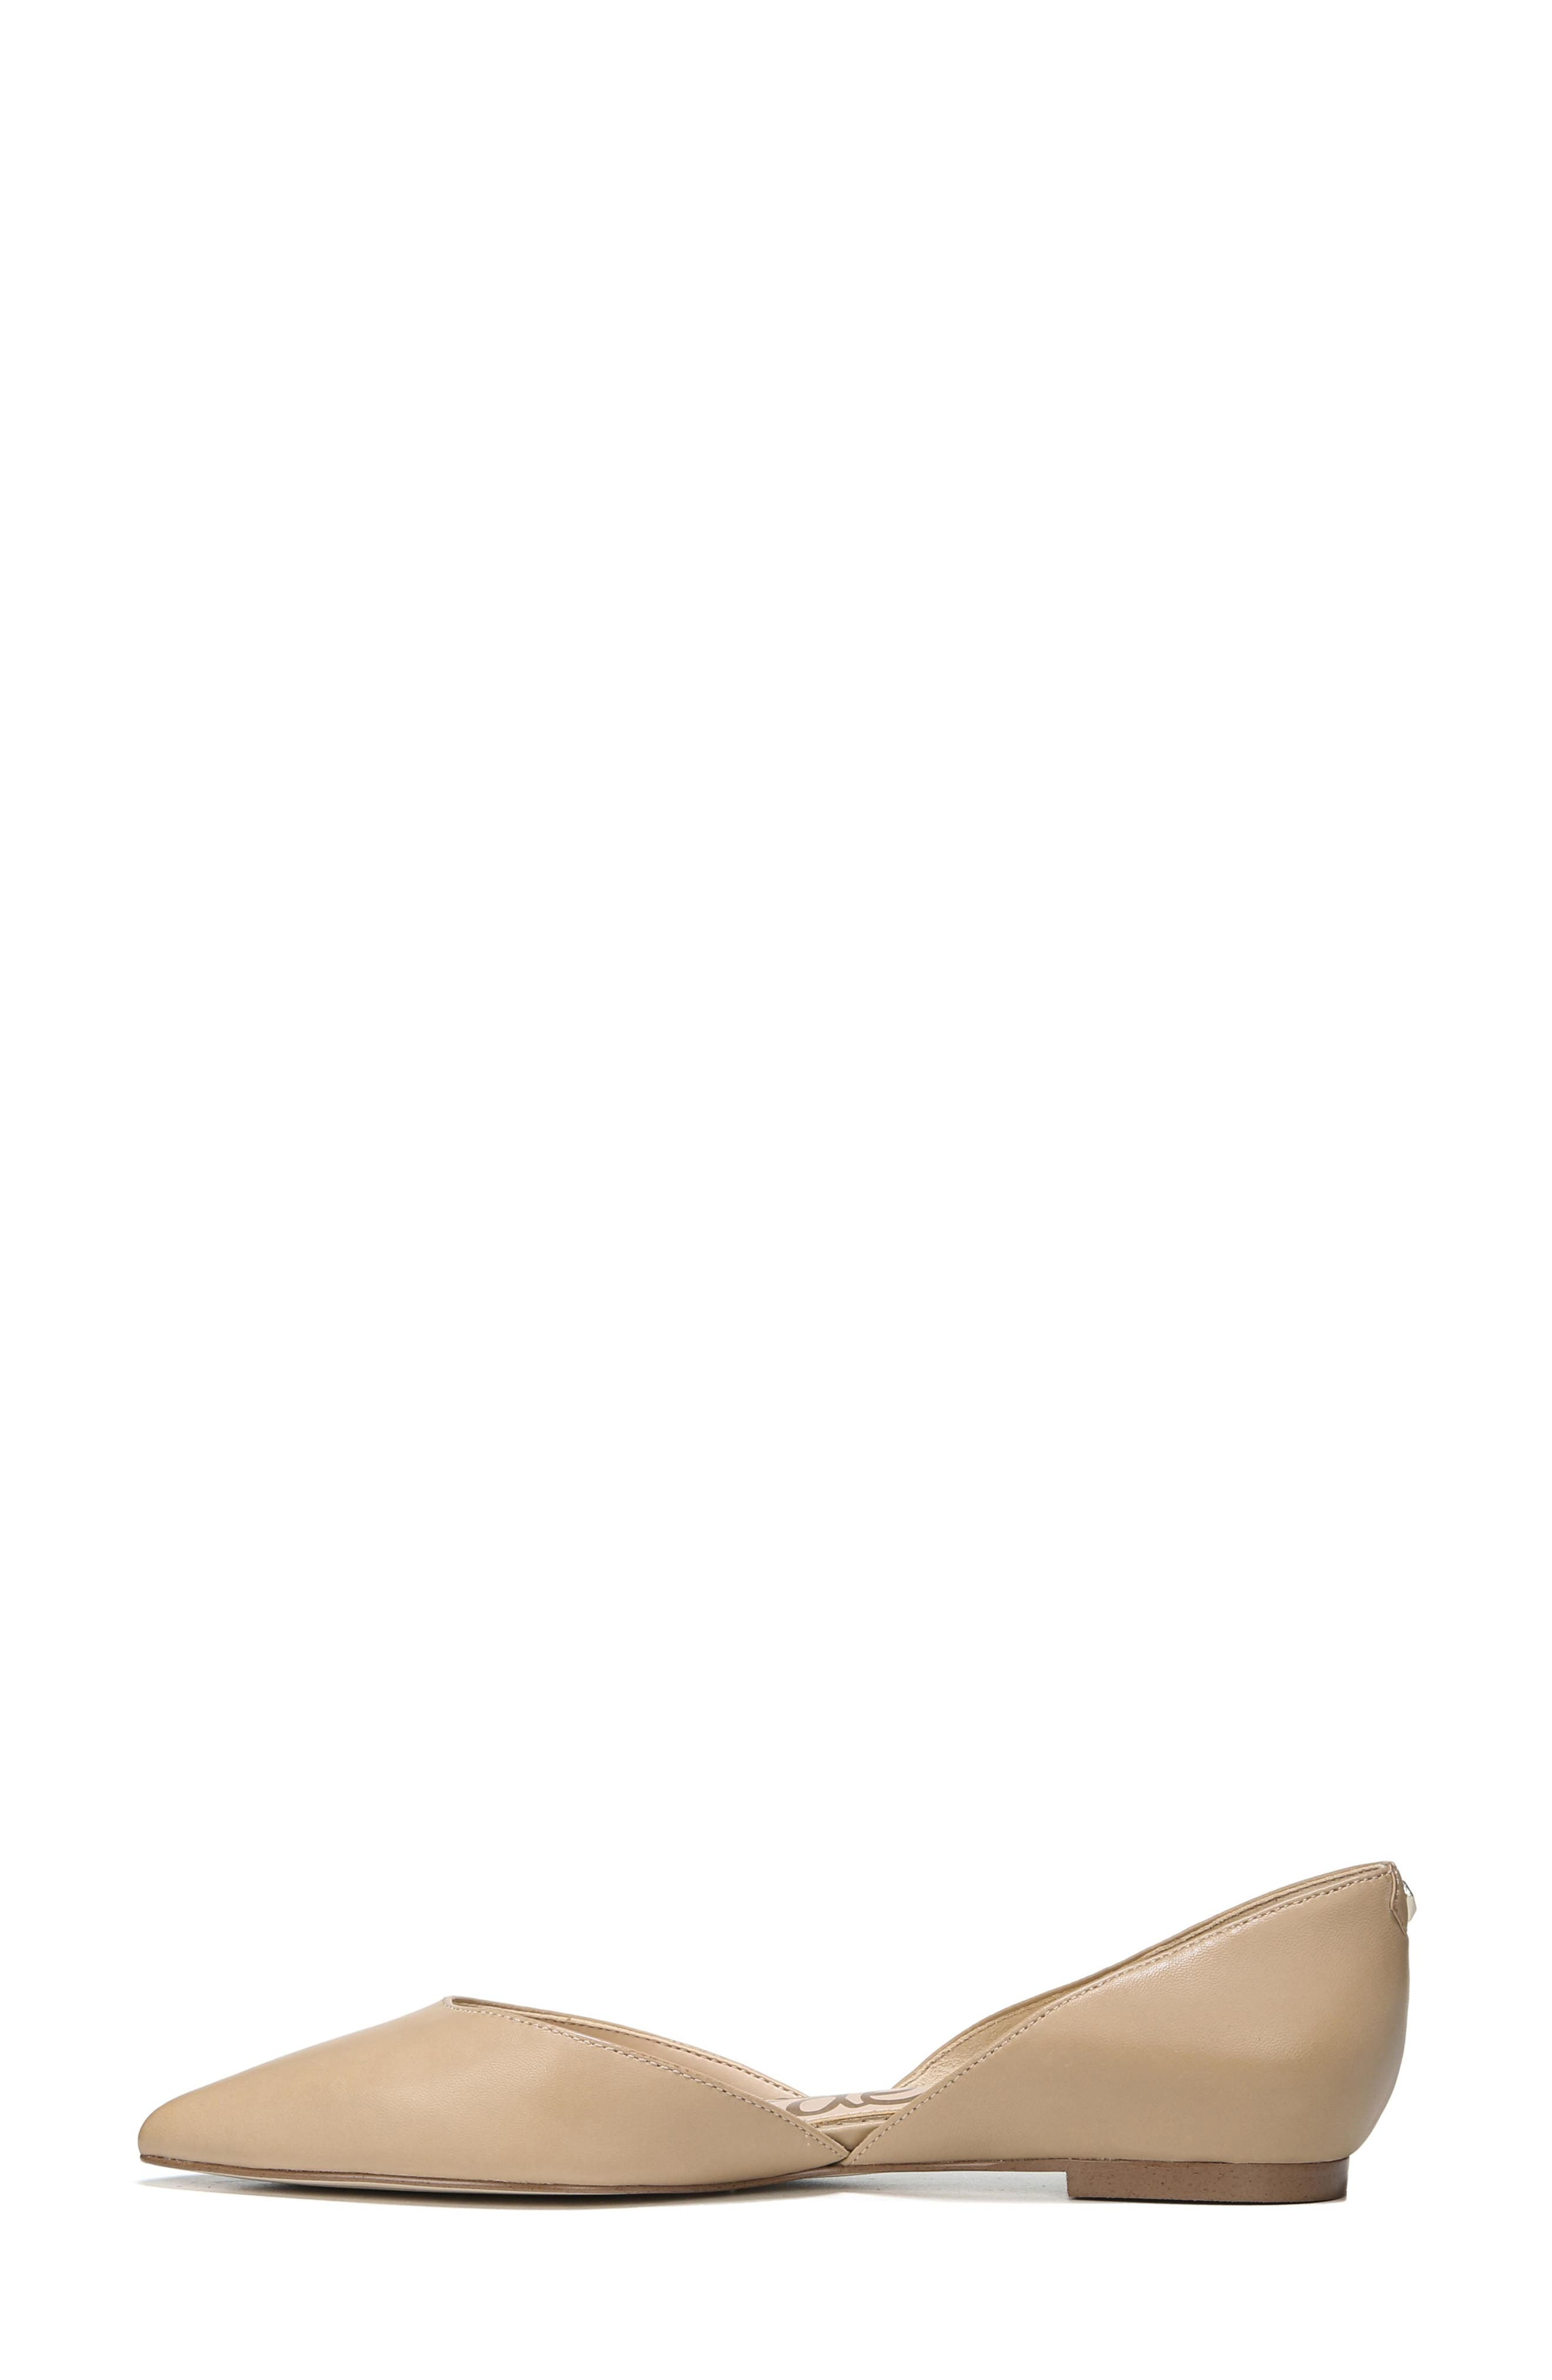 SAM EDELMAN, Rodney Pointy Toe d'Orsay Flat, Alternate thumbnail 9, color, CLASSIC NUDE LEATHER